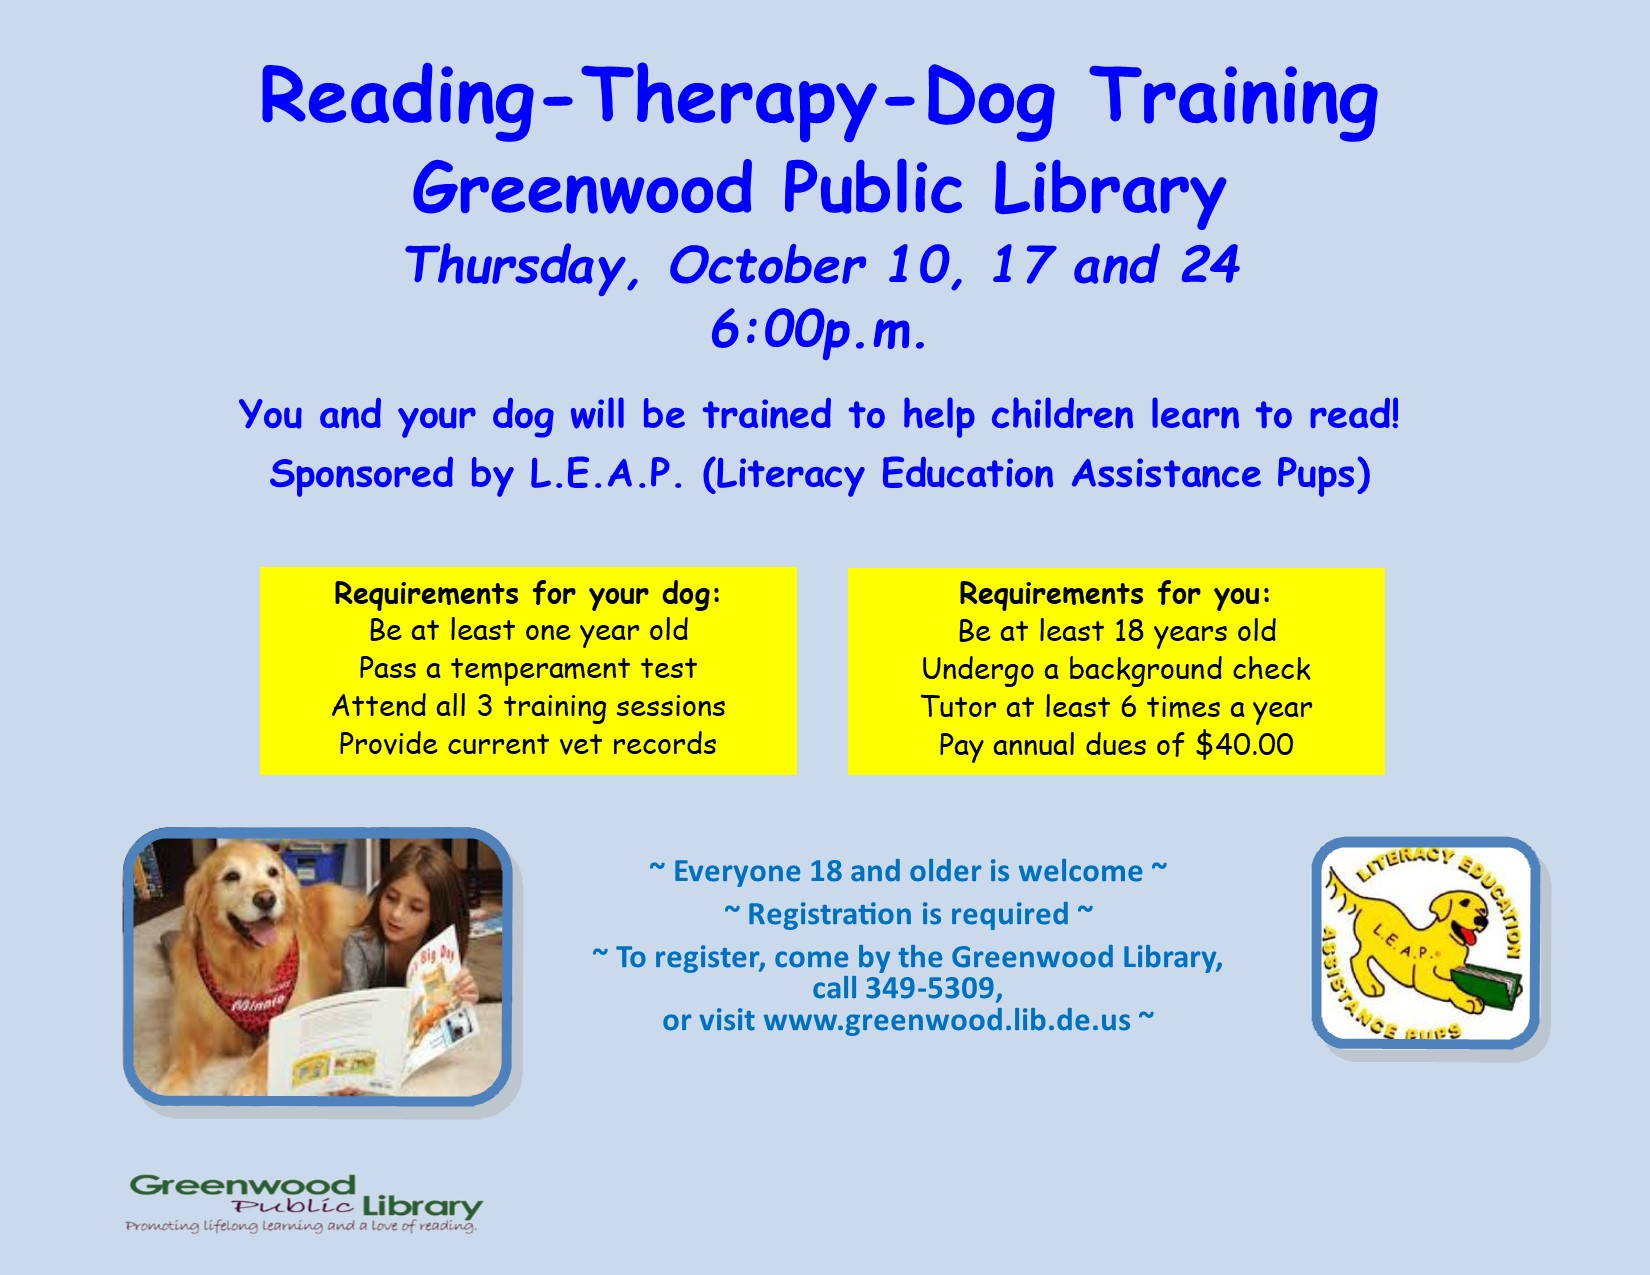 Reading Therapy Dog Training with Literacy Education Assistance Pups (L.E.A.P.)